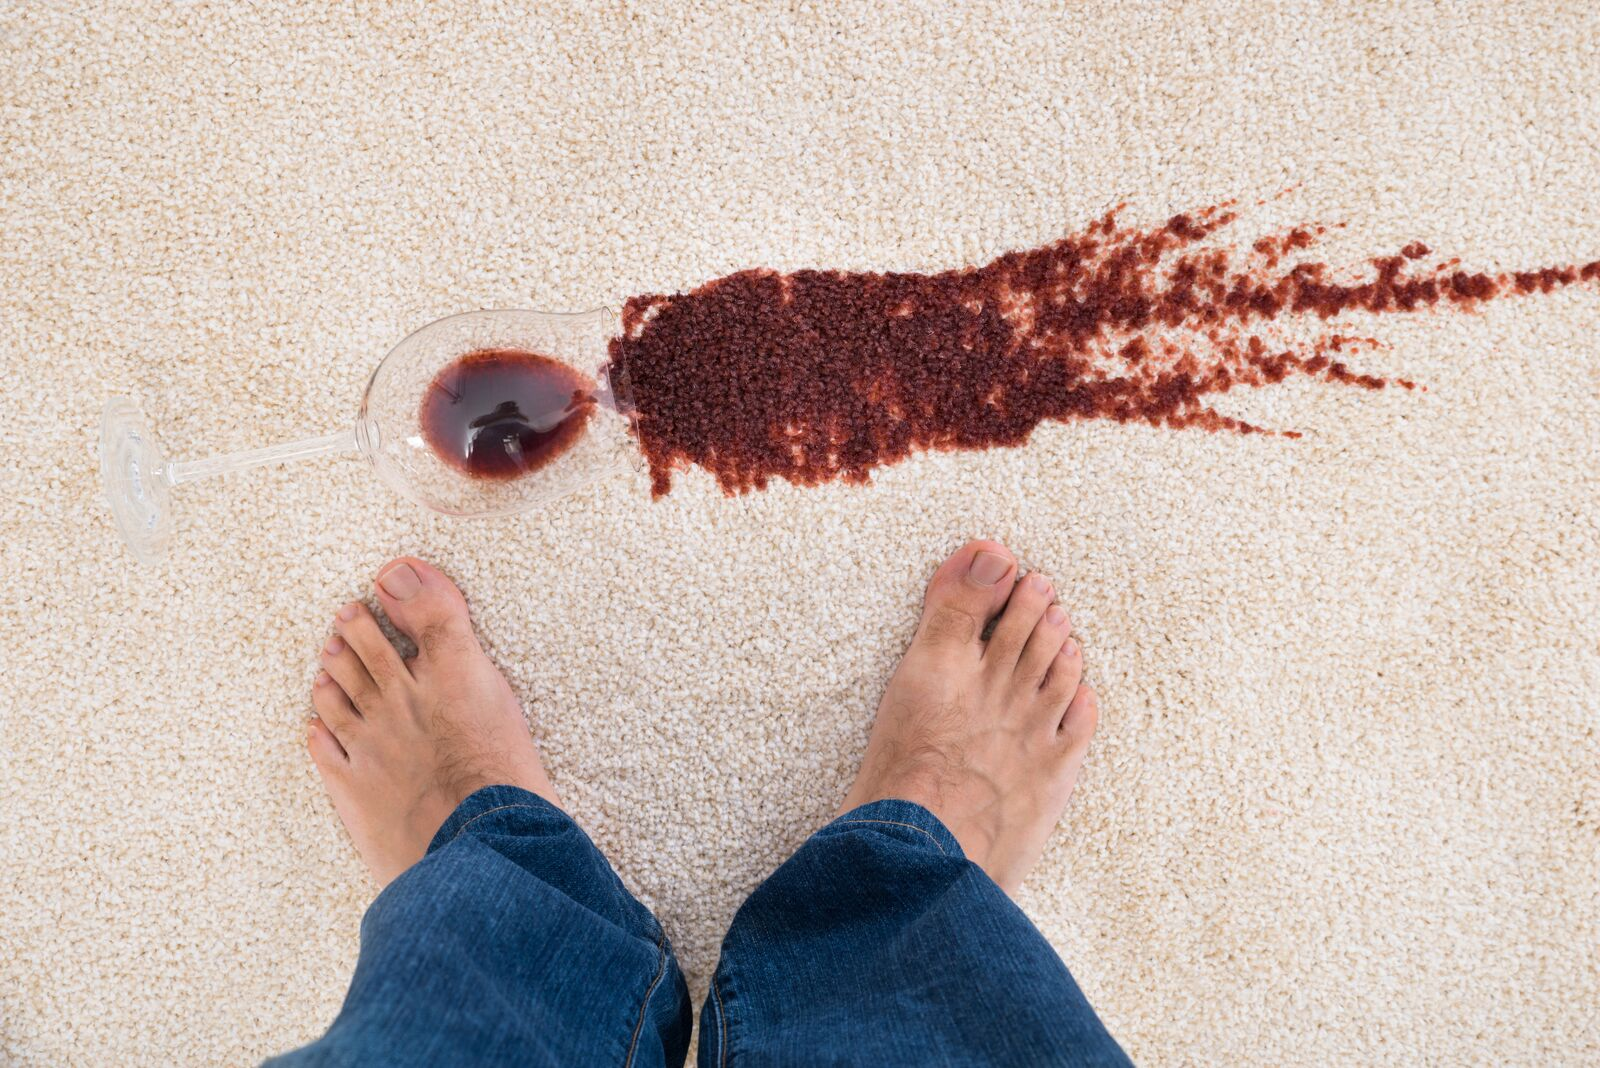 5 Carpet Cleaning Methods and Which One is Best